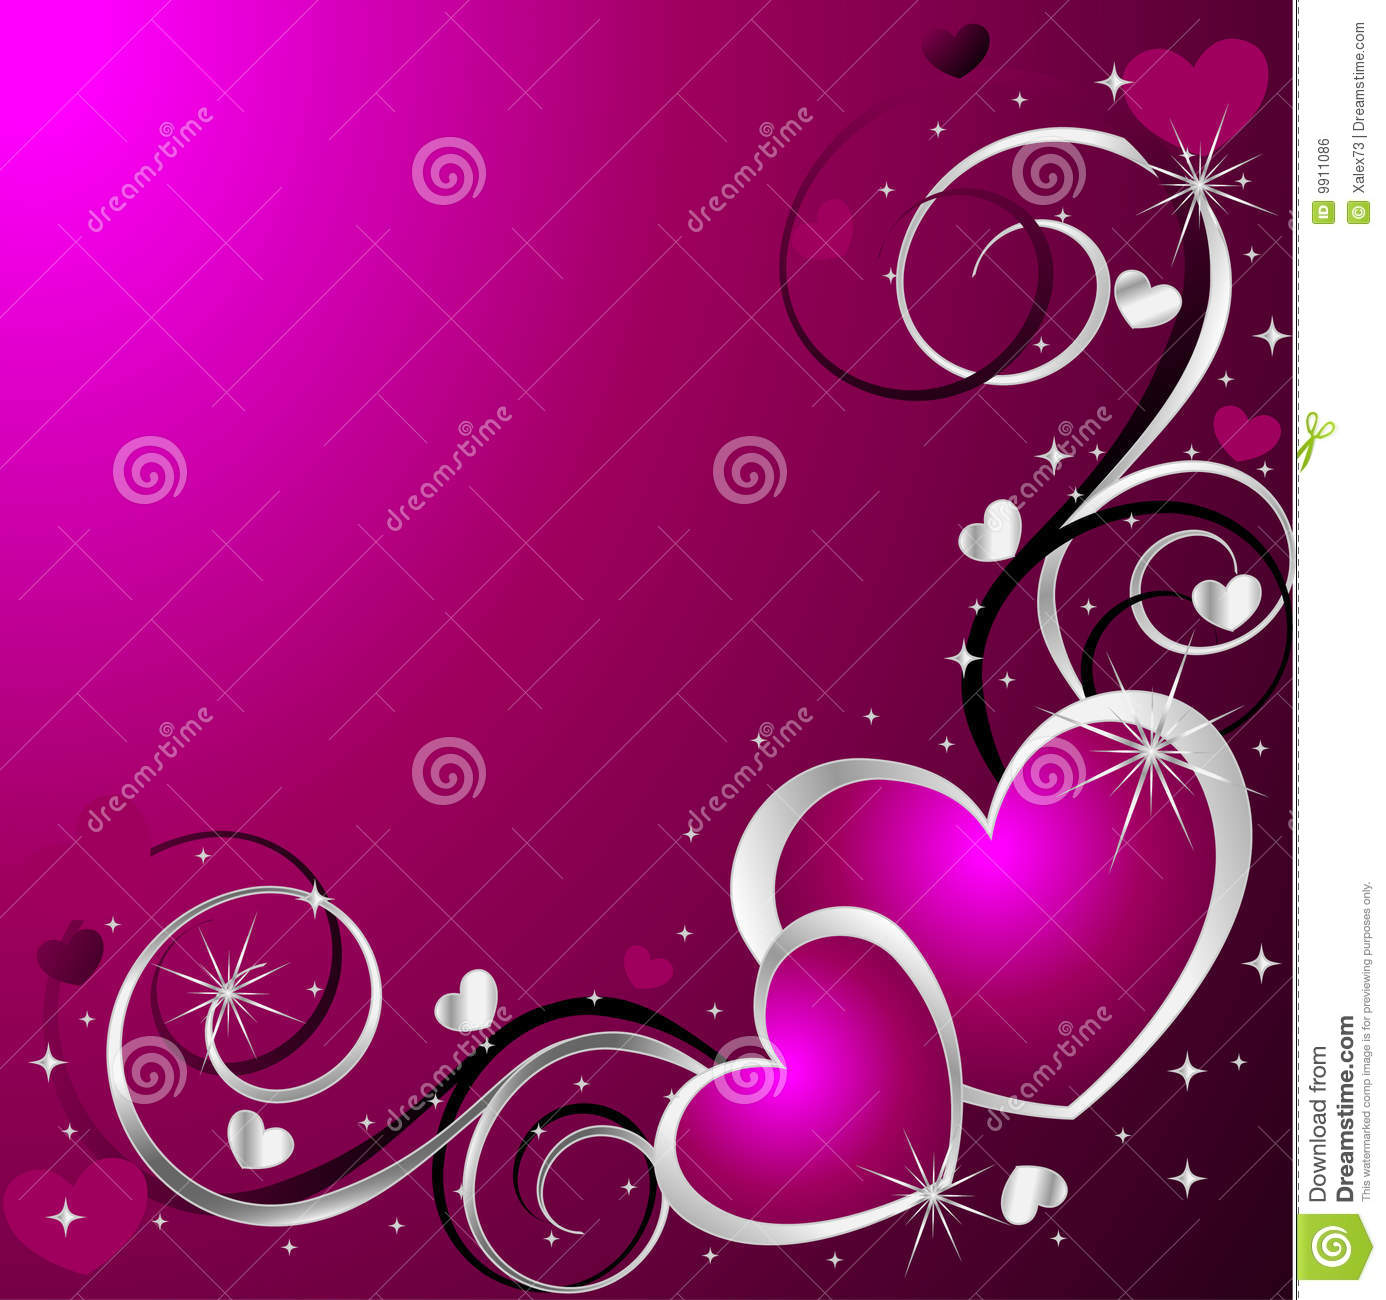 rapunzel hair styles background with hearts royalty free stock image image 5169